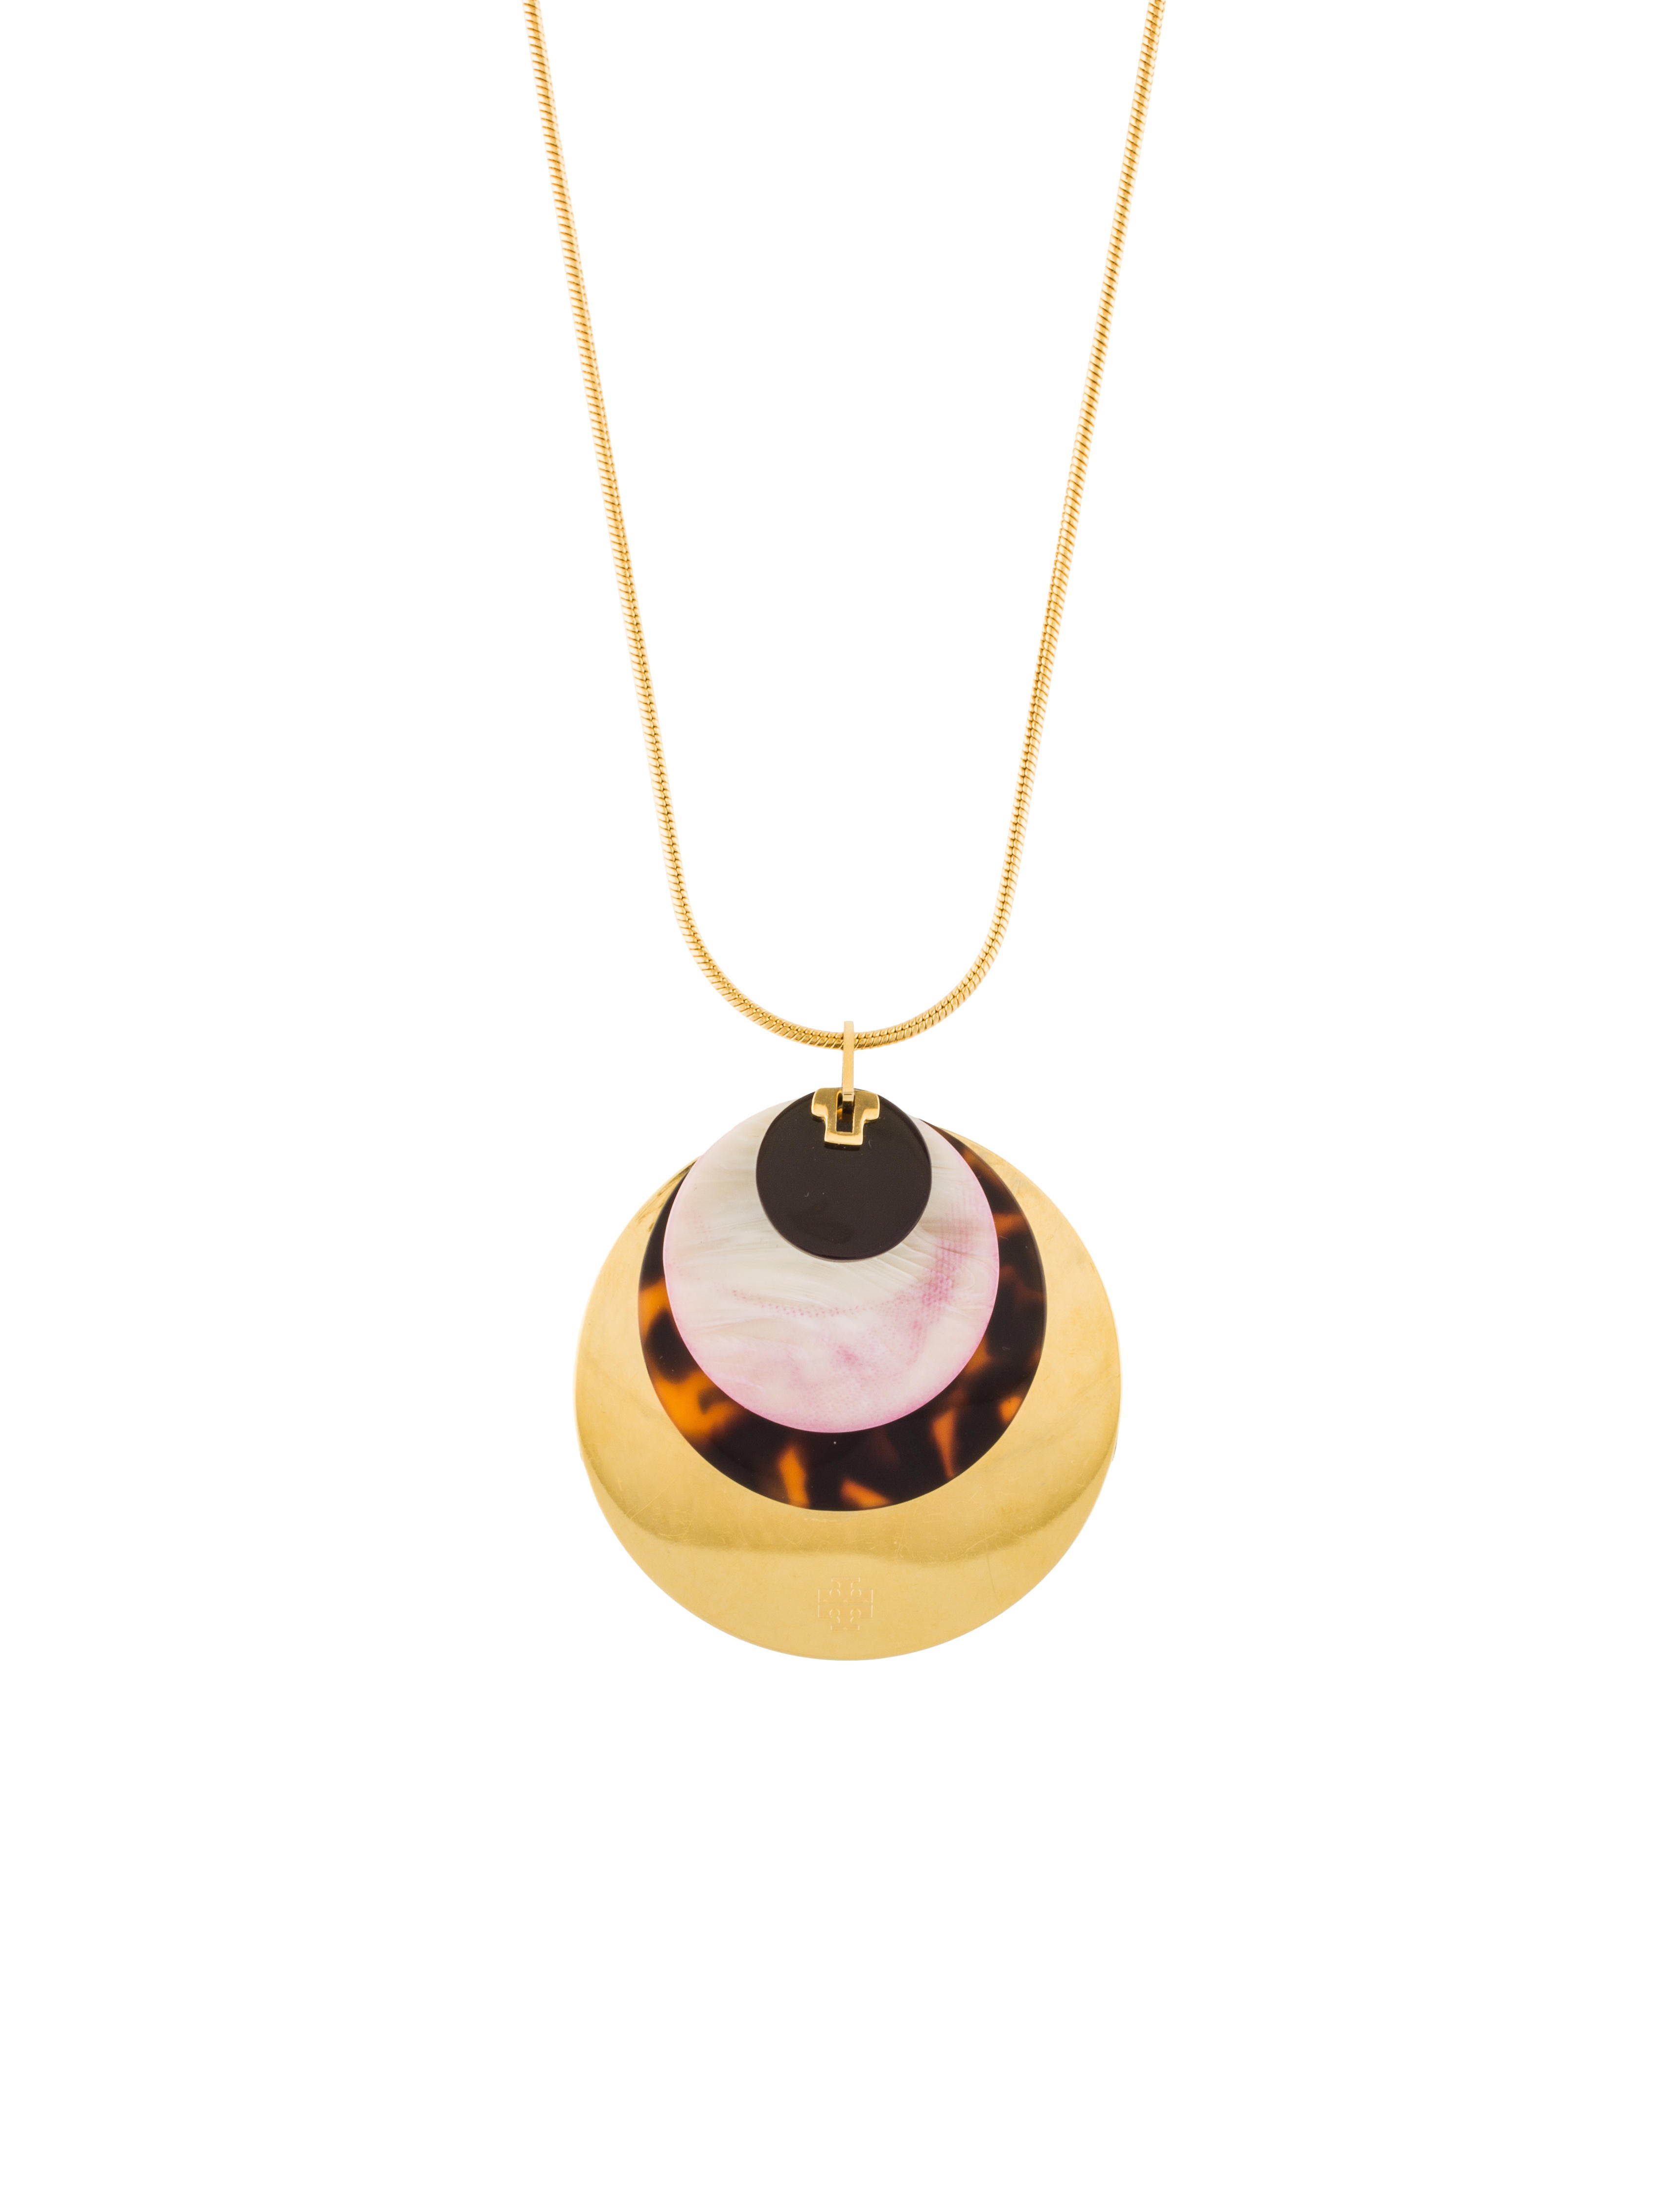 Tory burch layered disc pendant necklace necklaces wto125400 layered disc pendant necklace aloadofball Image collections